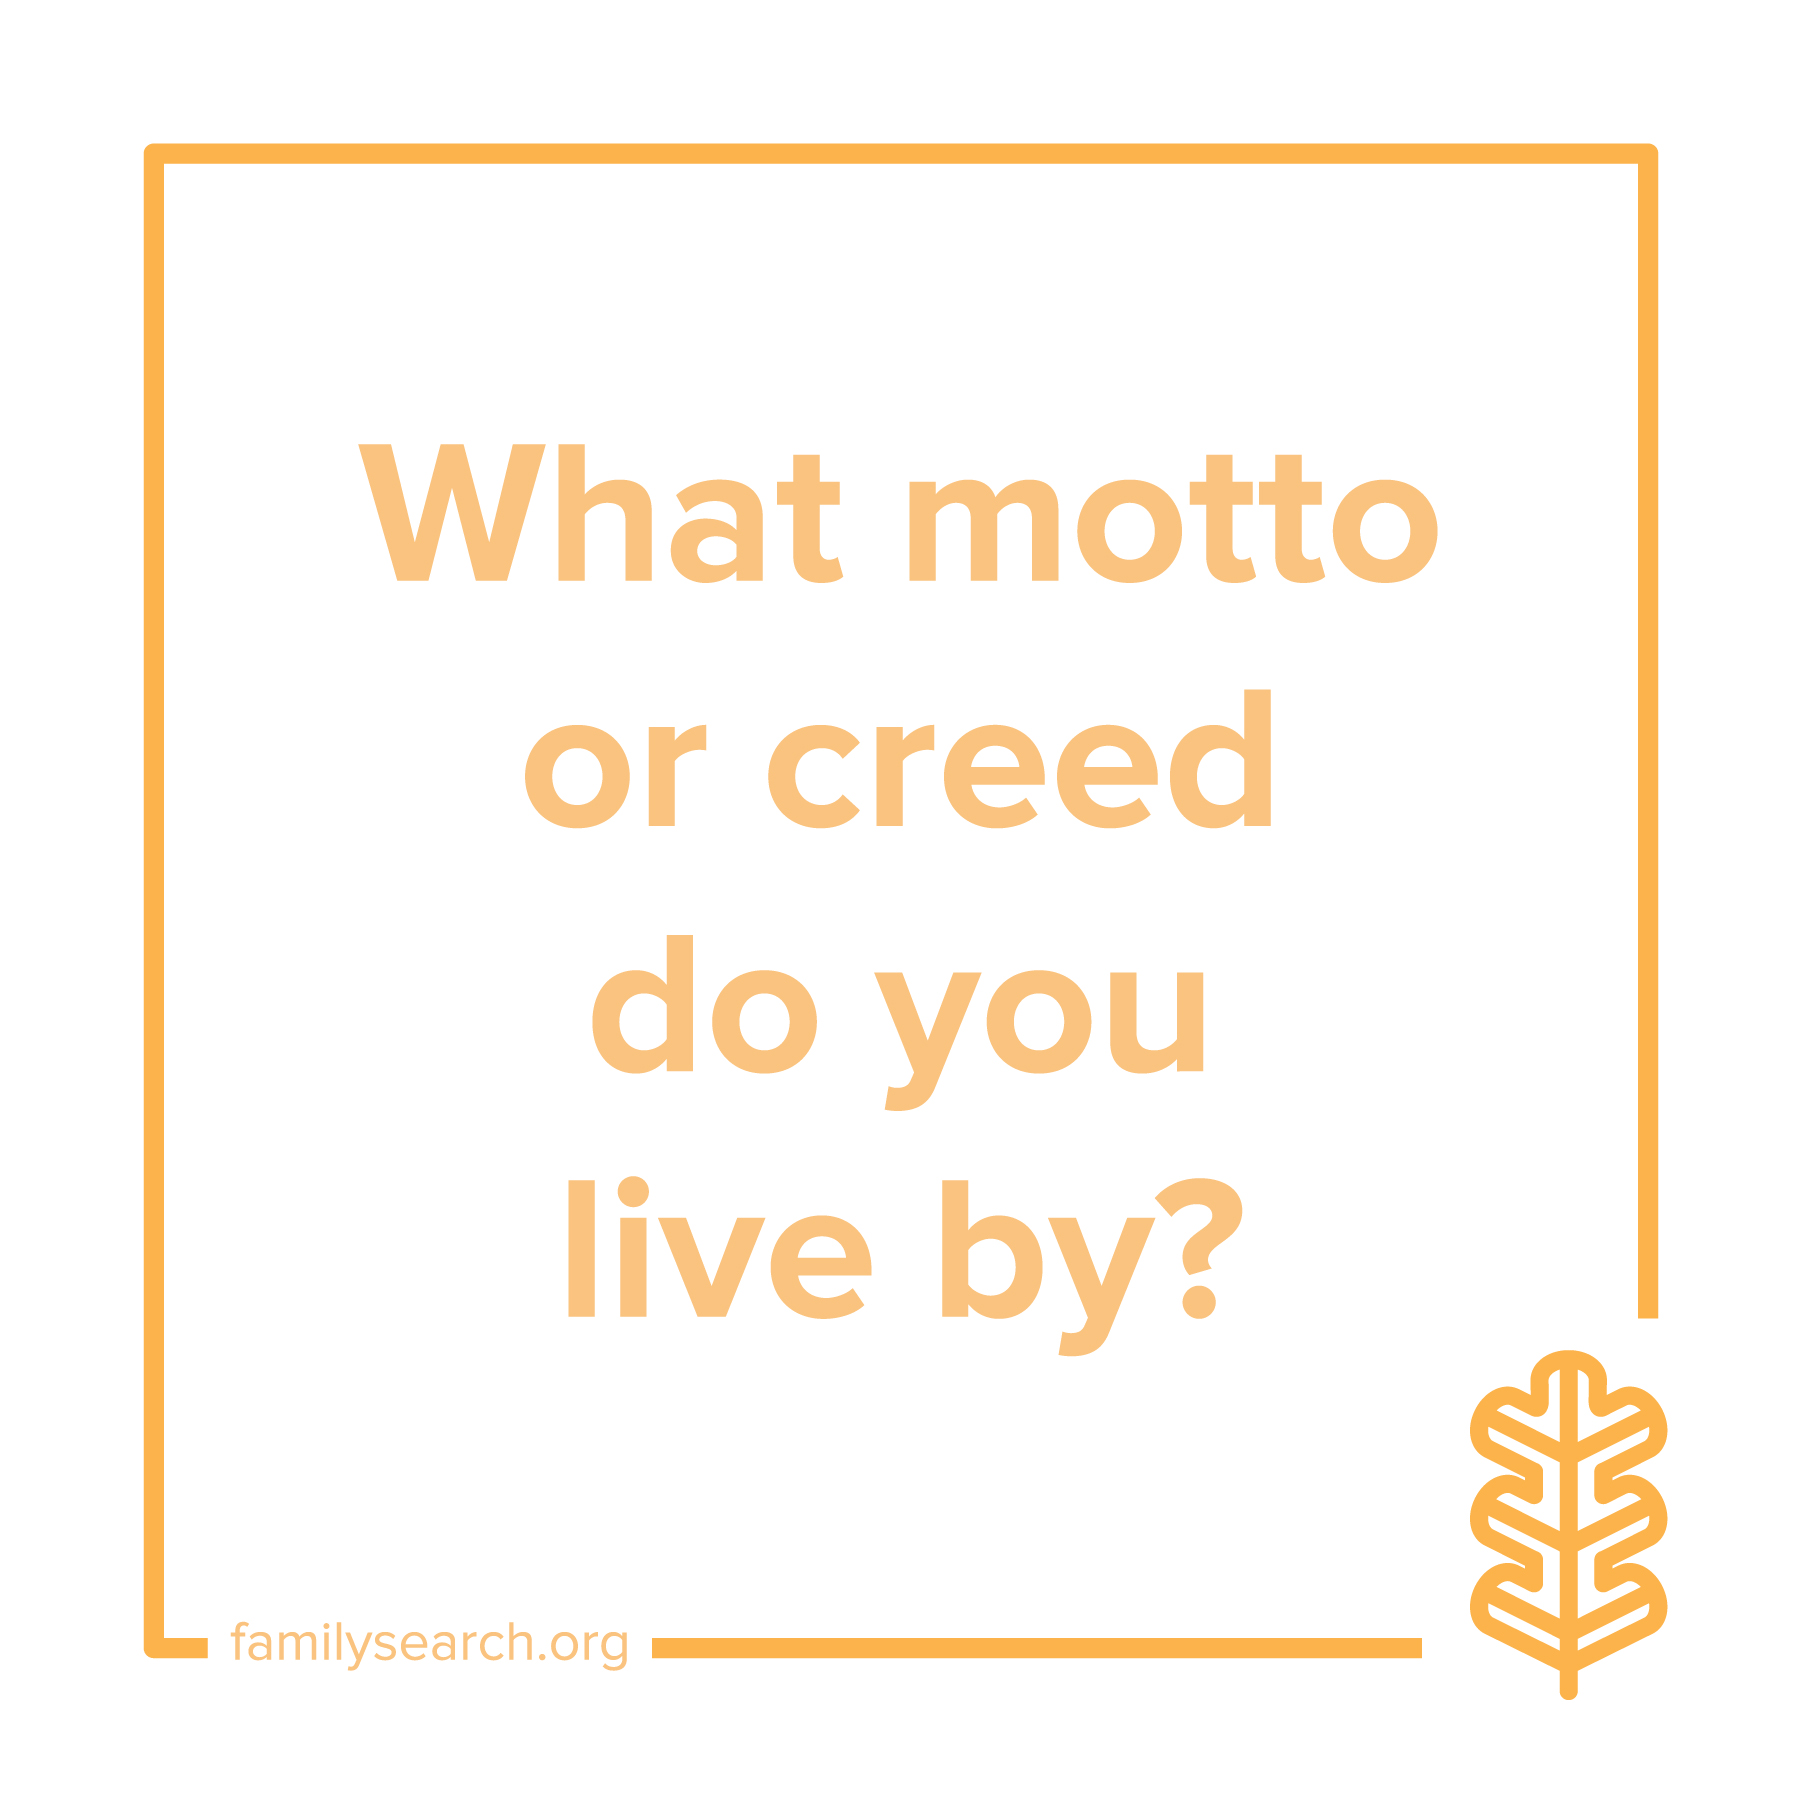 What motto or creed do you live by?